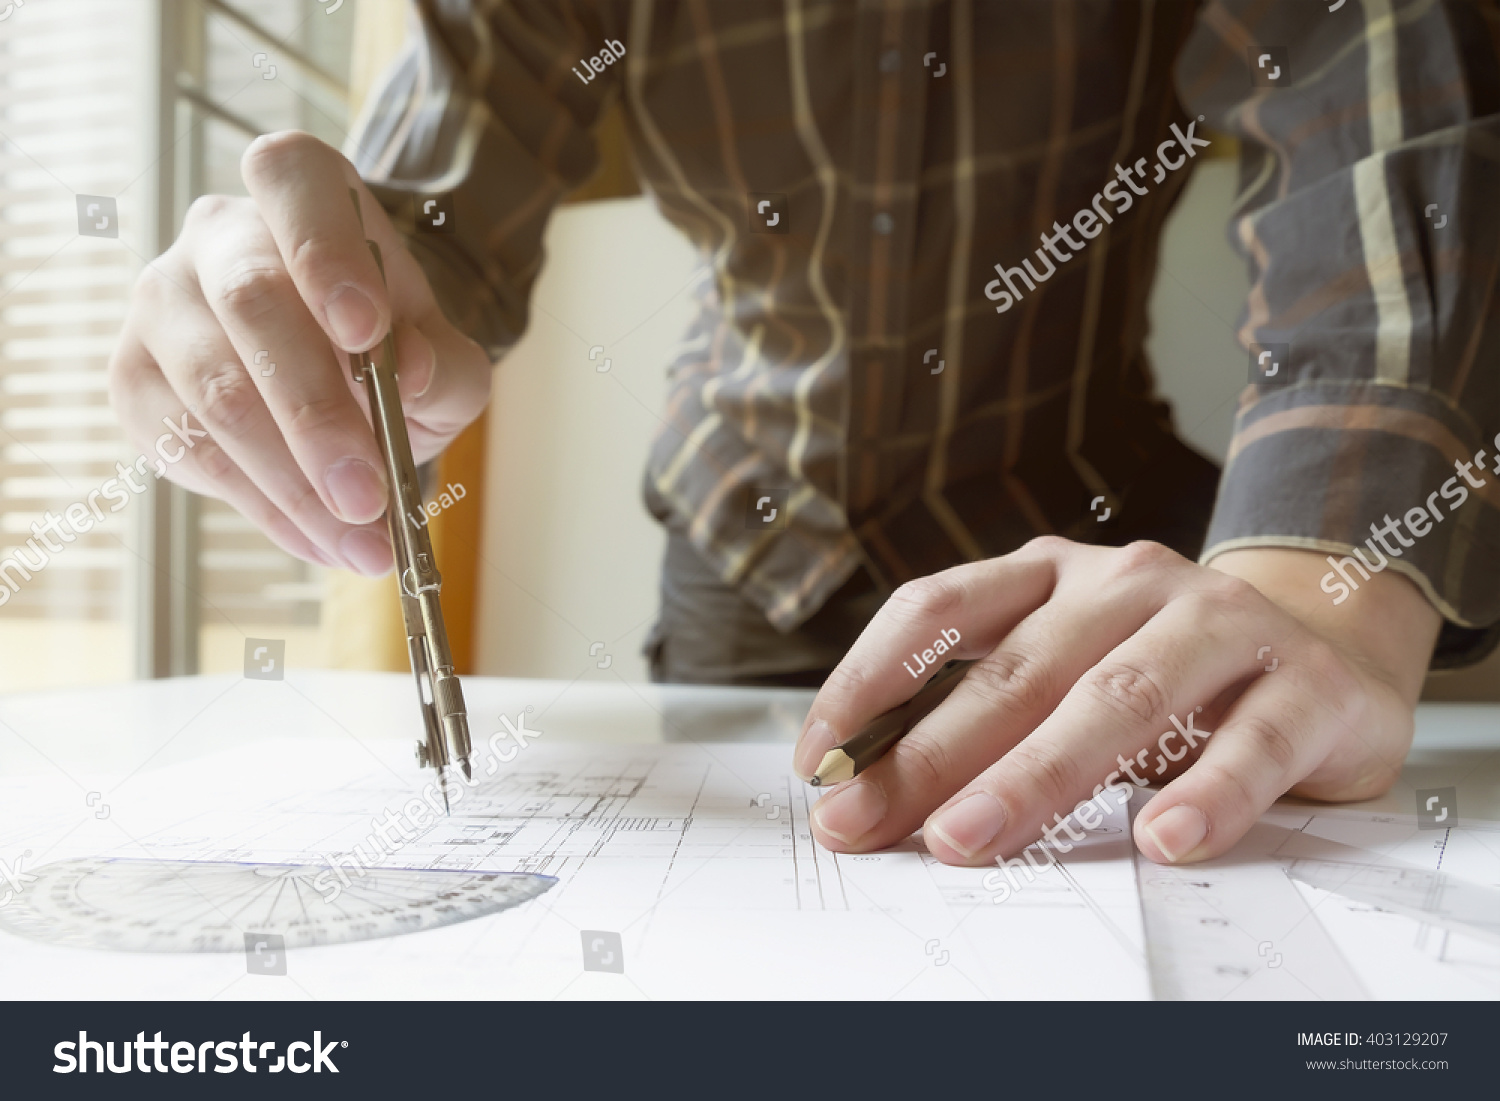 Man's hand with a compass Mechanical engineer at work Technical drawings Pencil compass calculator and hand man Paper with technical drawings and diagrams User sunlight vintage retro filter